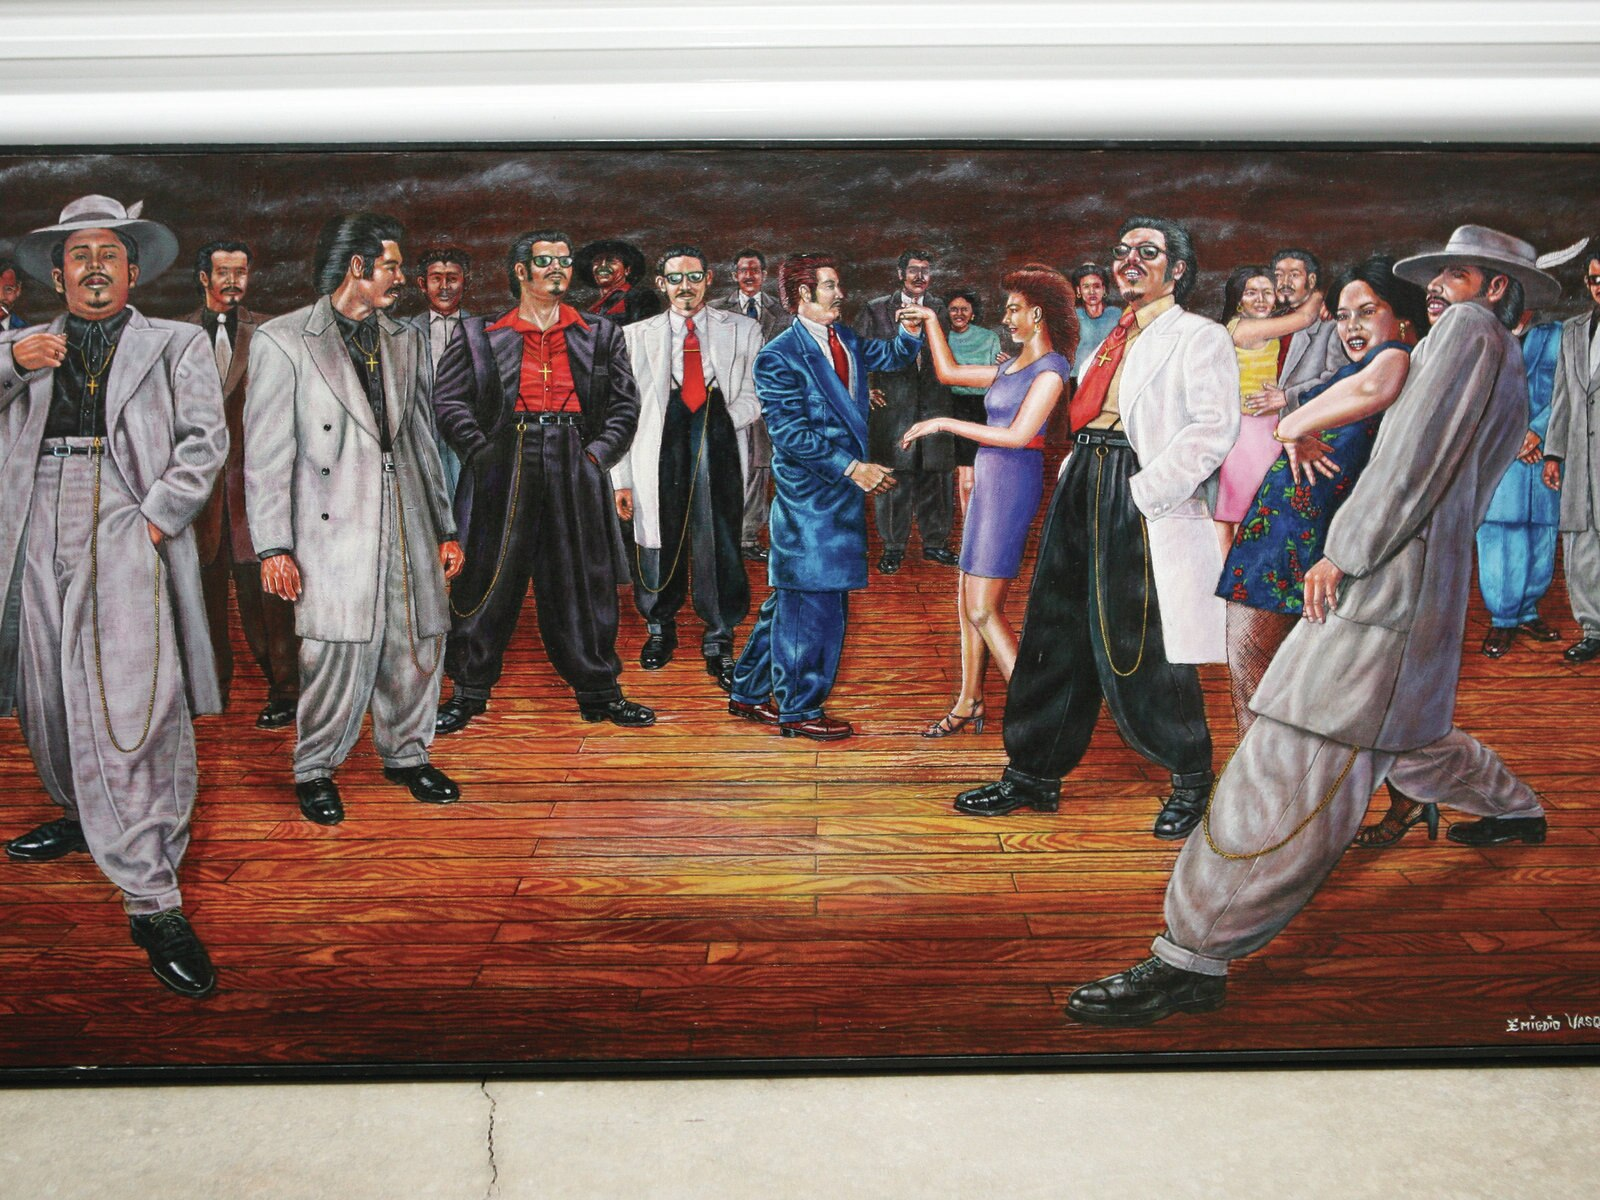 An analysis of the painting of cesar chavez tribute by the artist emigdio vazquez